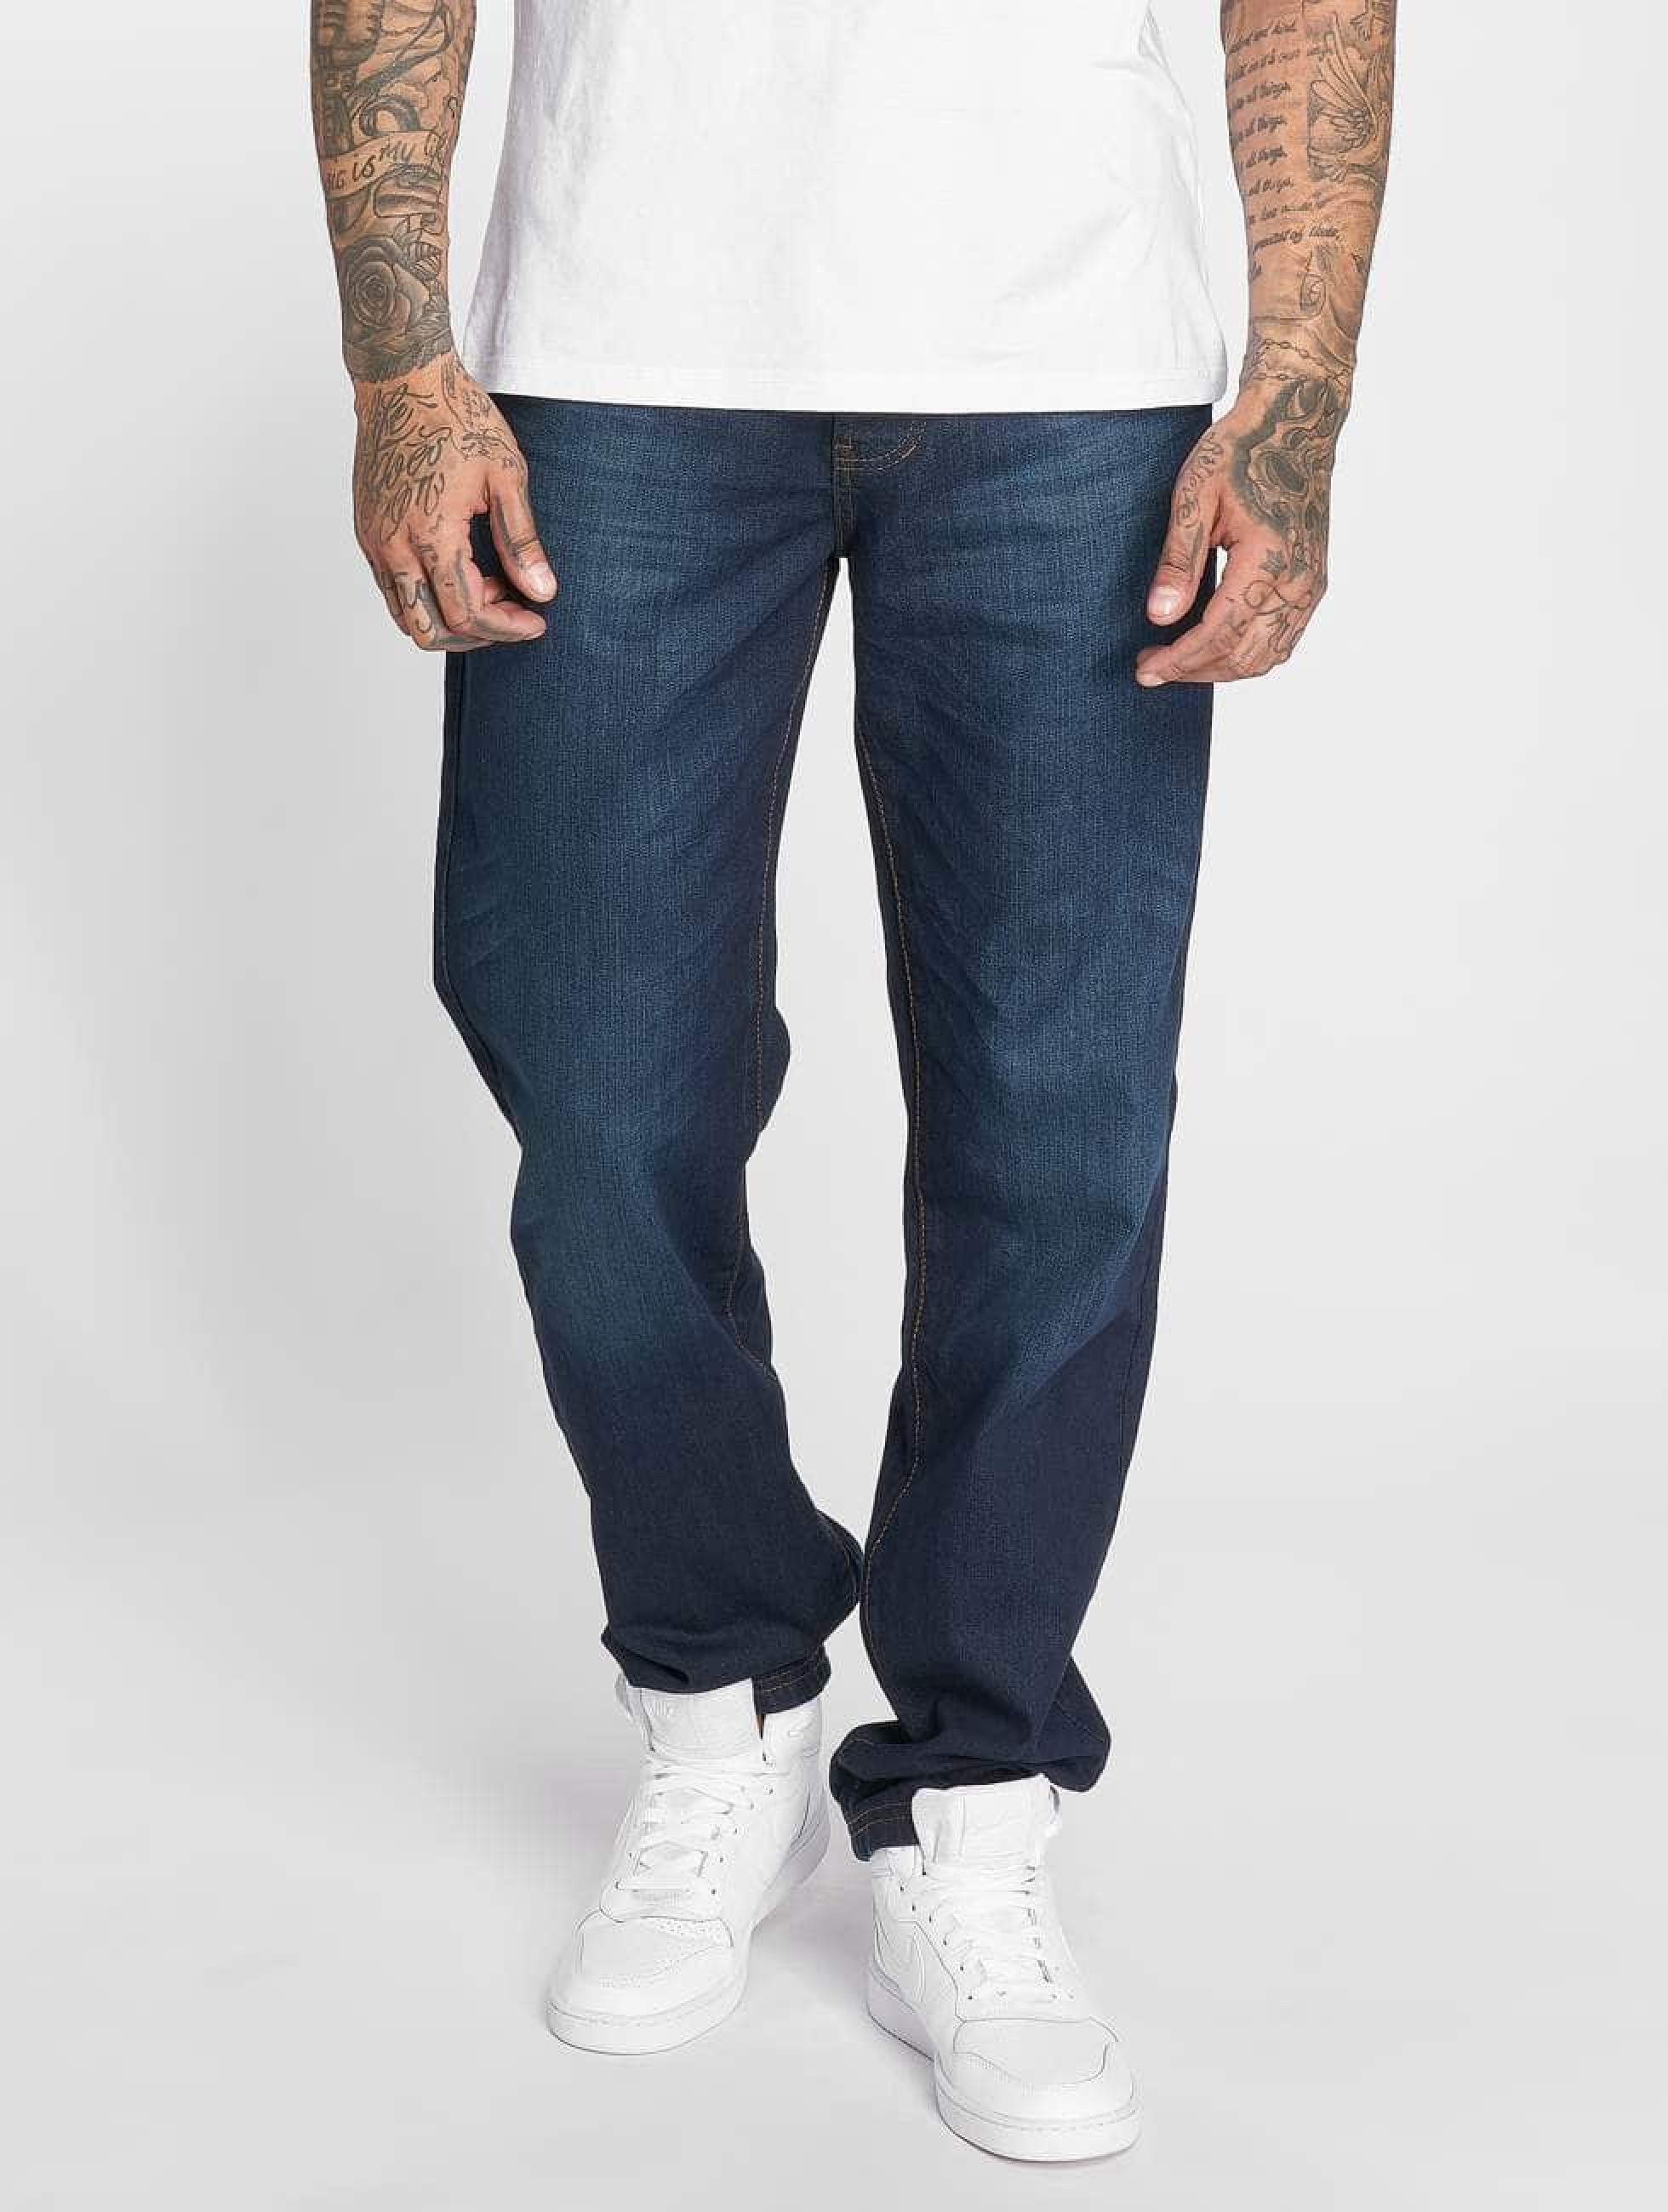 Thug Life / Carrot Fit Jeans B . Denim in blue W 36 L 32